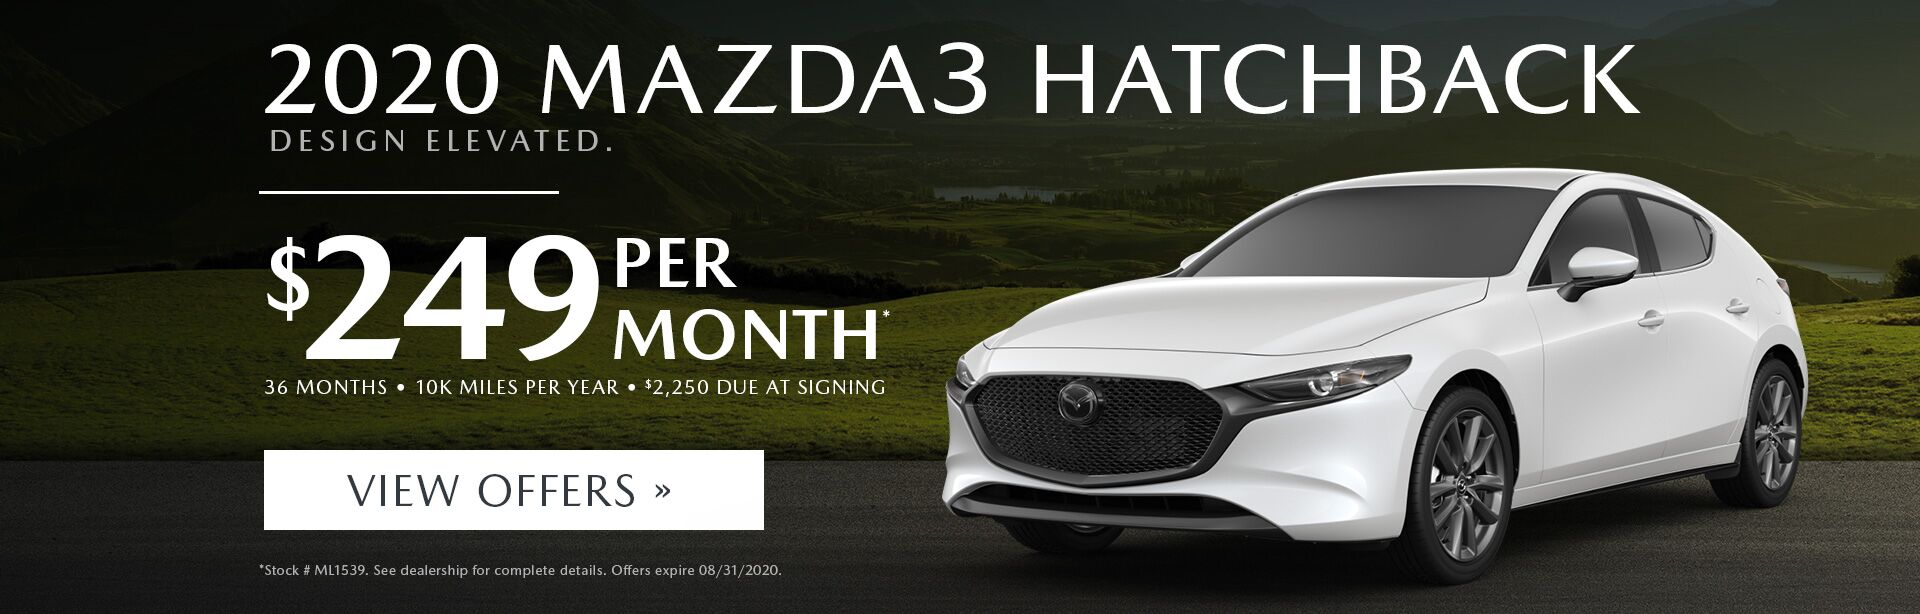 Aug - 2020 Mazda3 Hatchback